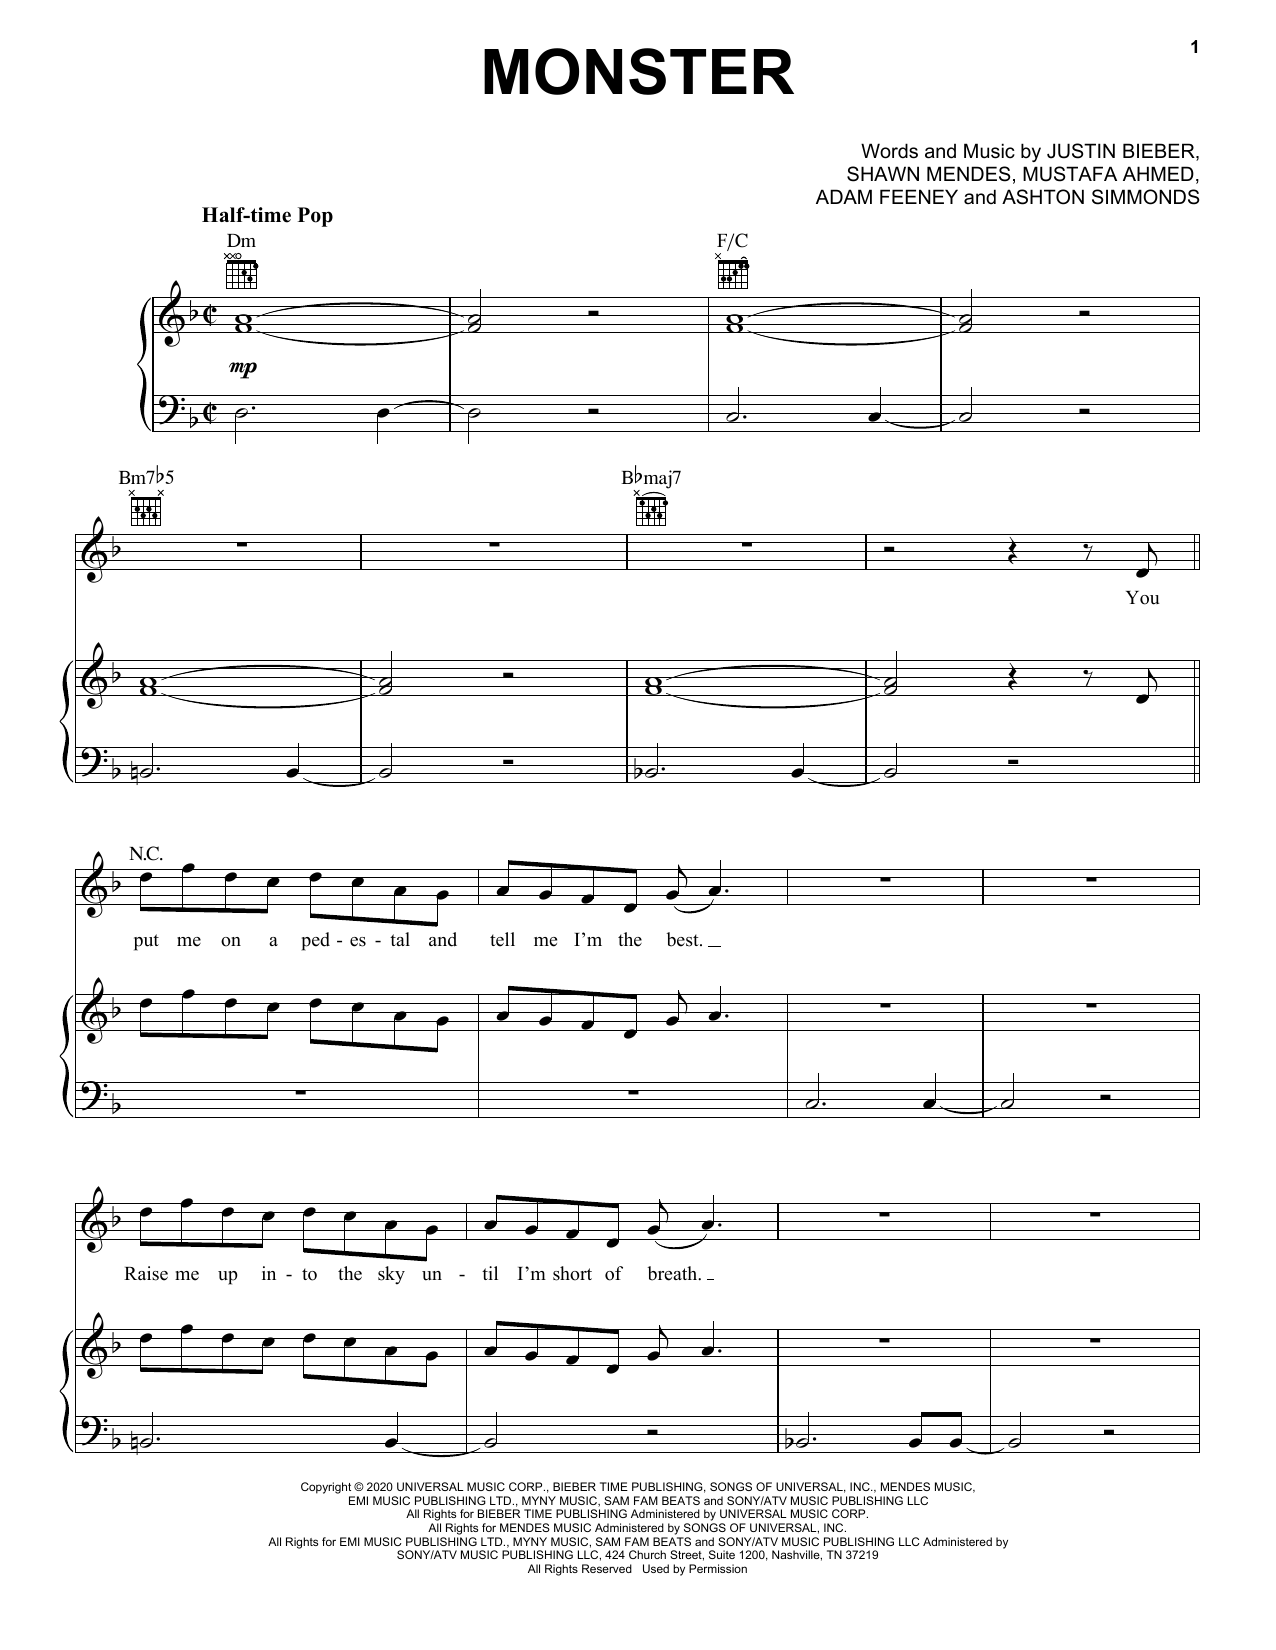 Shawn Mendes & Justin Bieber Monster sheet music notes and chords. Download Printable PDF.